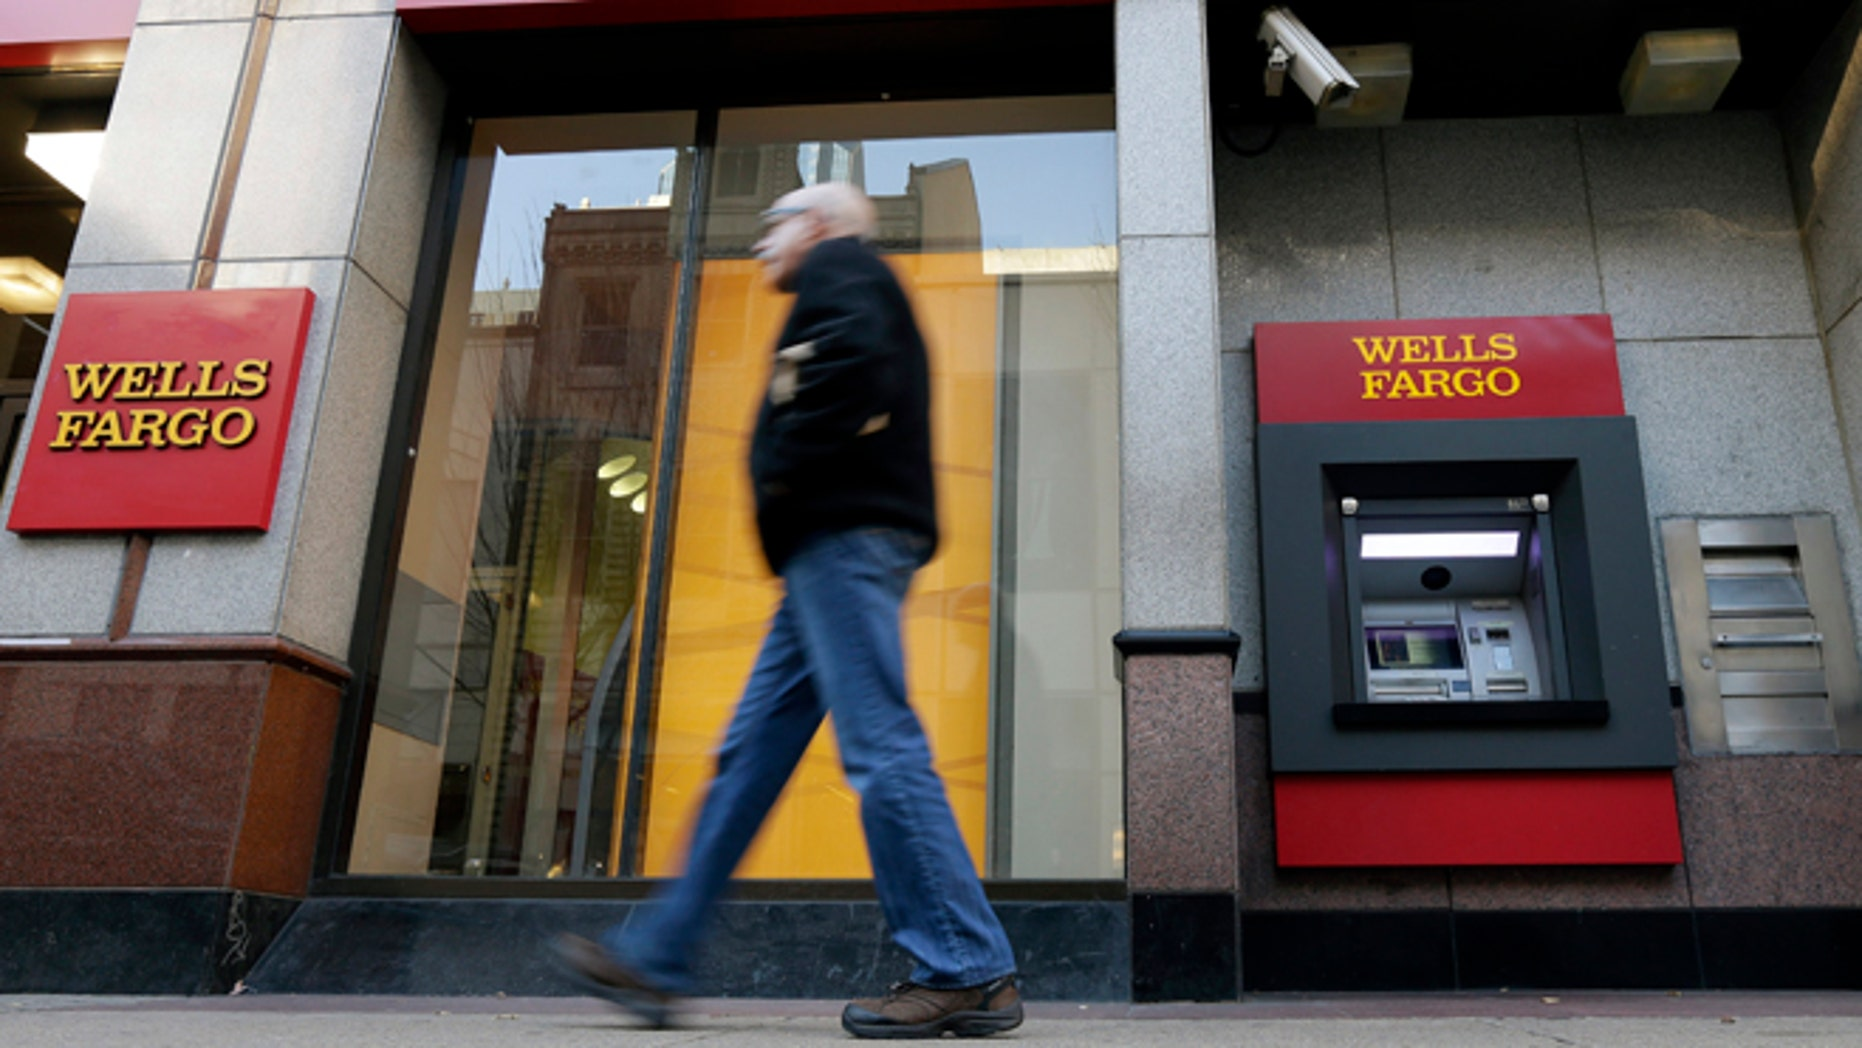 Dec. 19, 2012: A man walks past a Wells Fargo branch in Philadelphia.